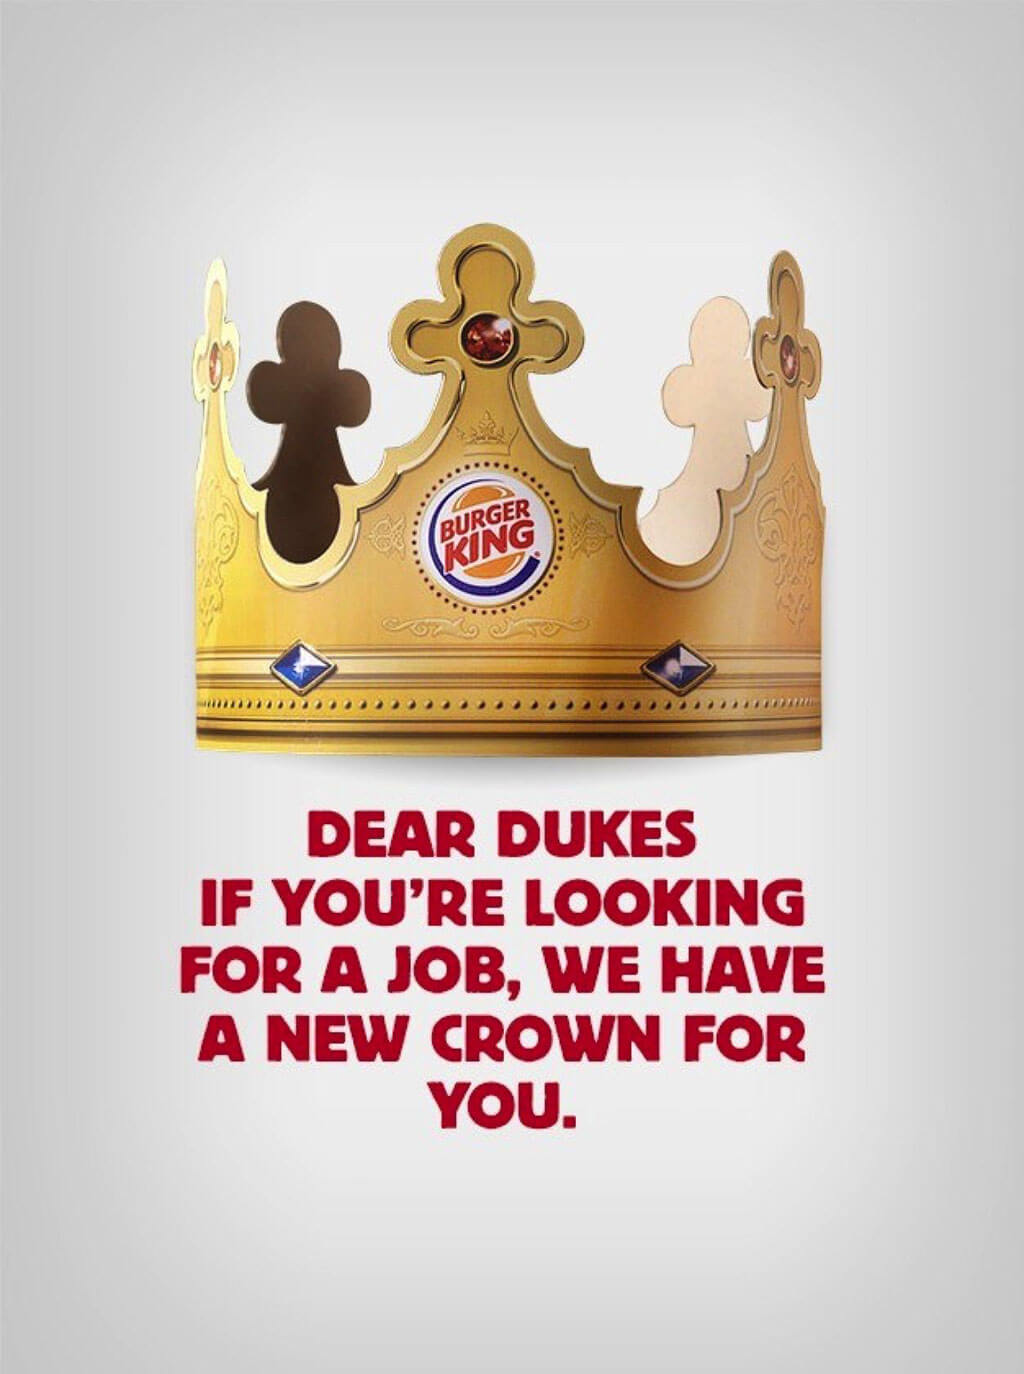 Burger King poster offers its crown